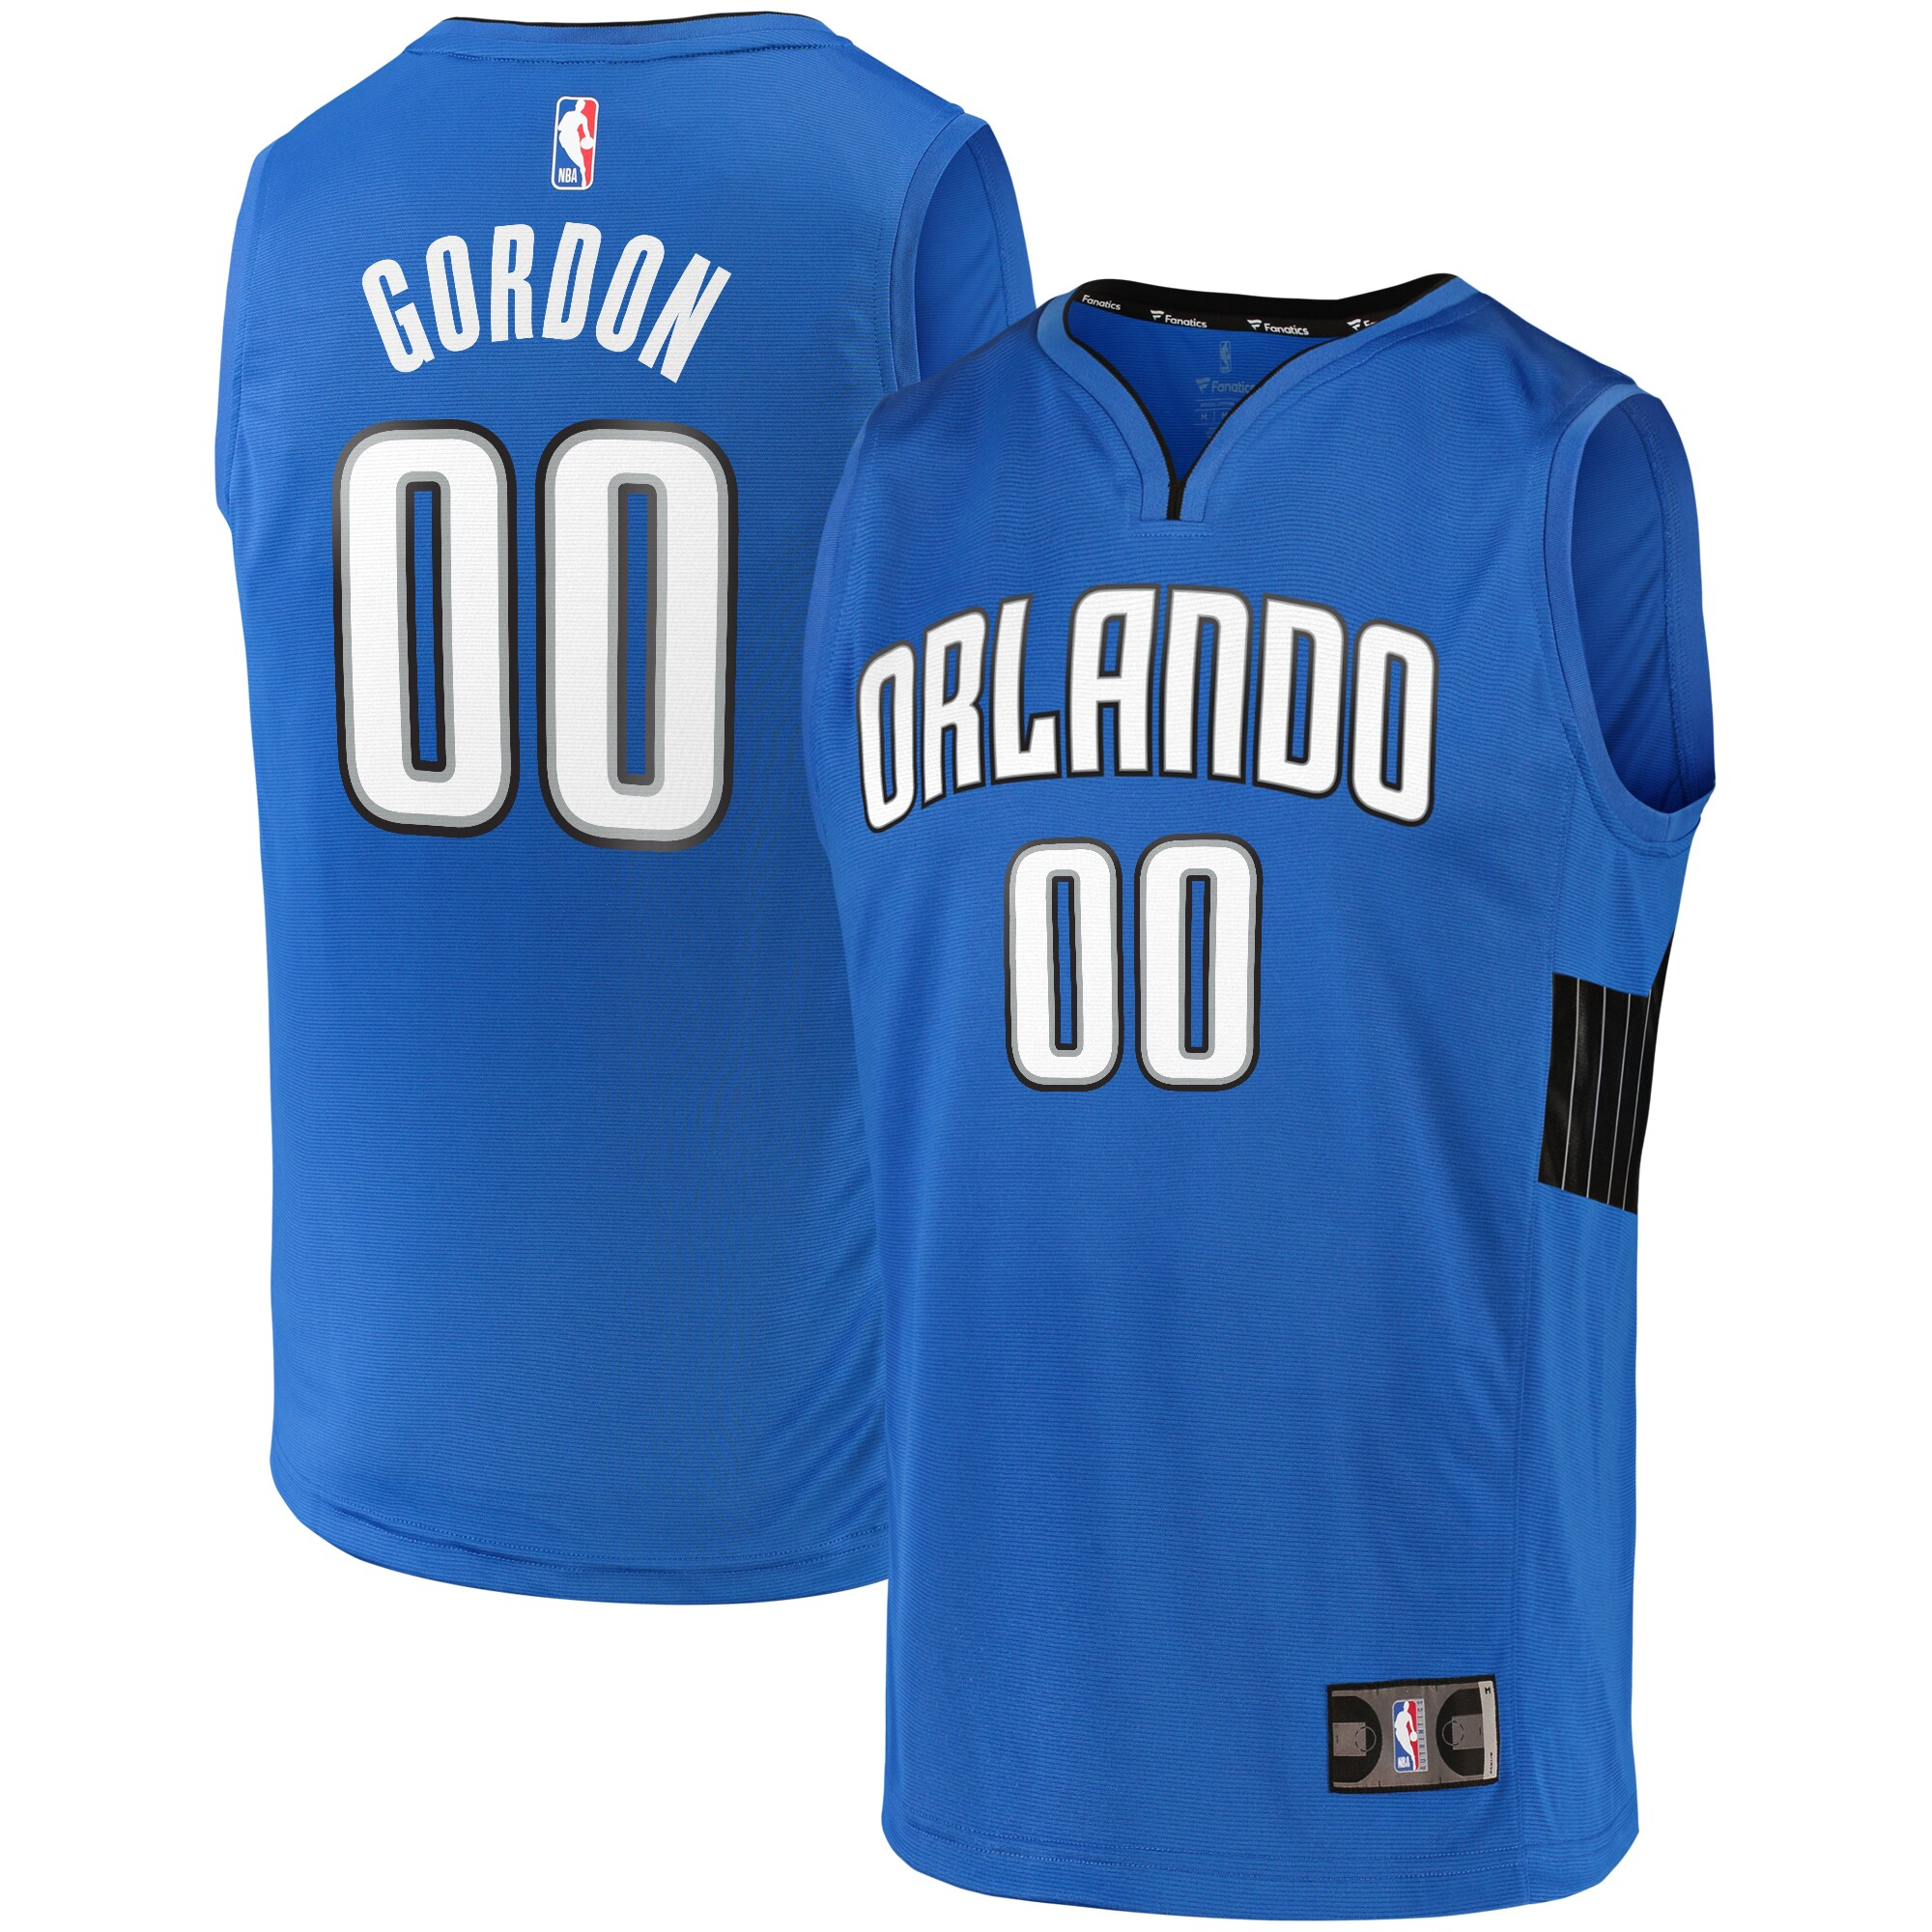 Aaron Gordon Orlando Magic Fanatics Branded Fast Break Team Replica Jersey Blue - Statement Edition